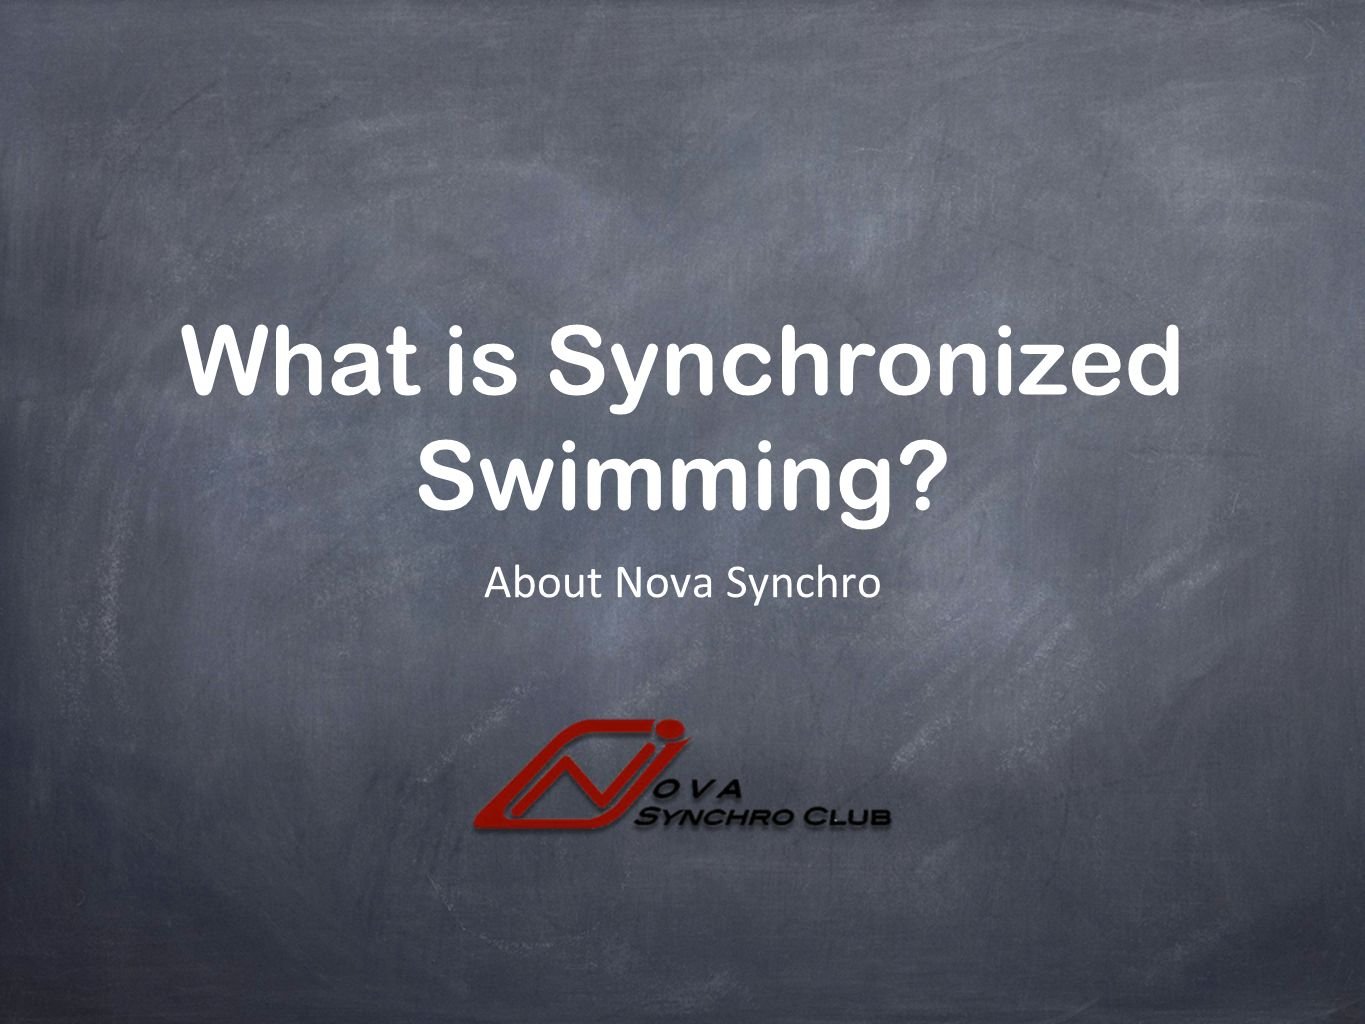 What is Synchronized Swimming